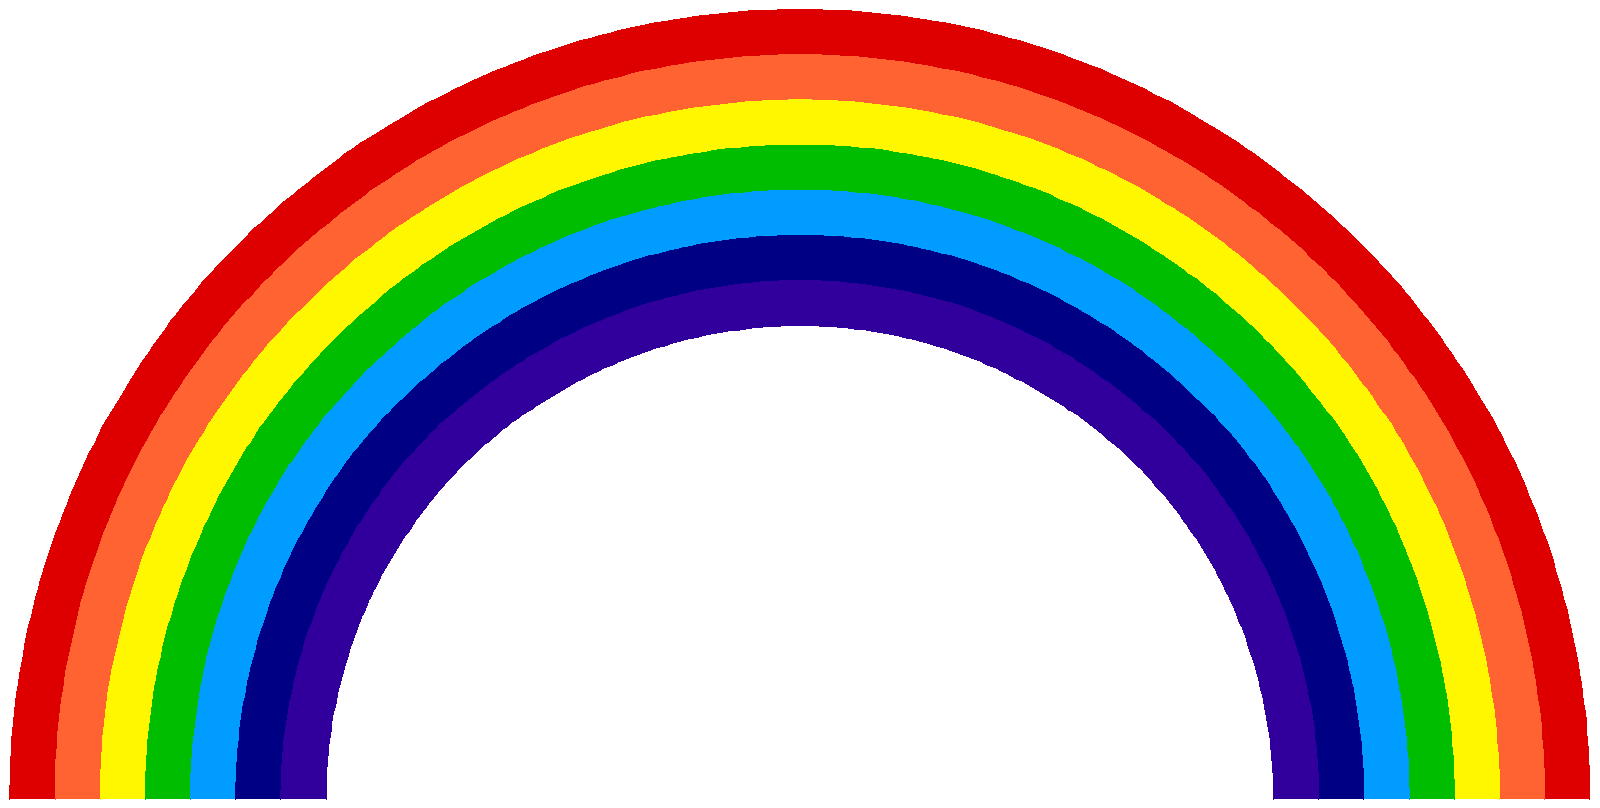 Rainbow Clip Art to Download.